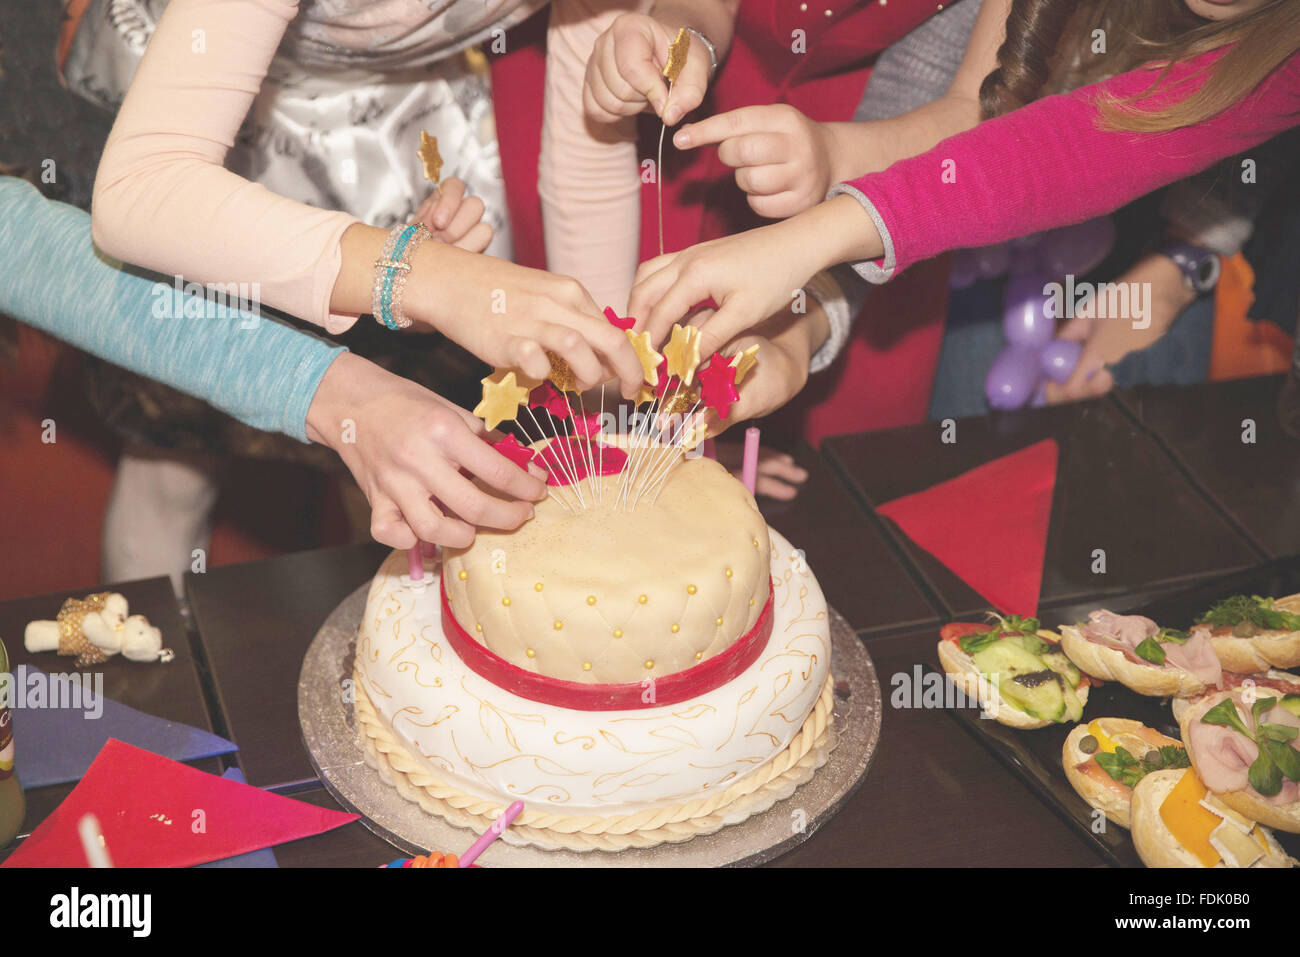 Four children decorating birthday cake - Stock Image